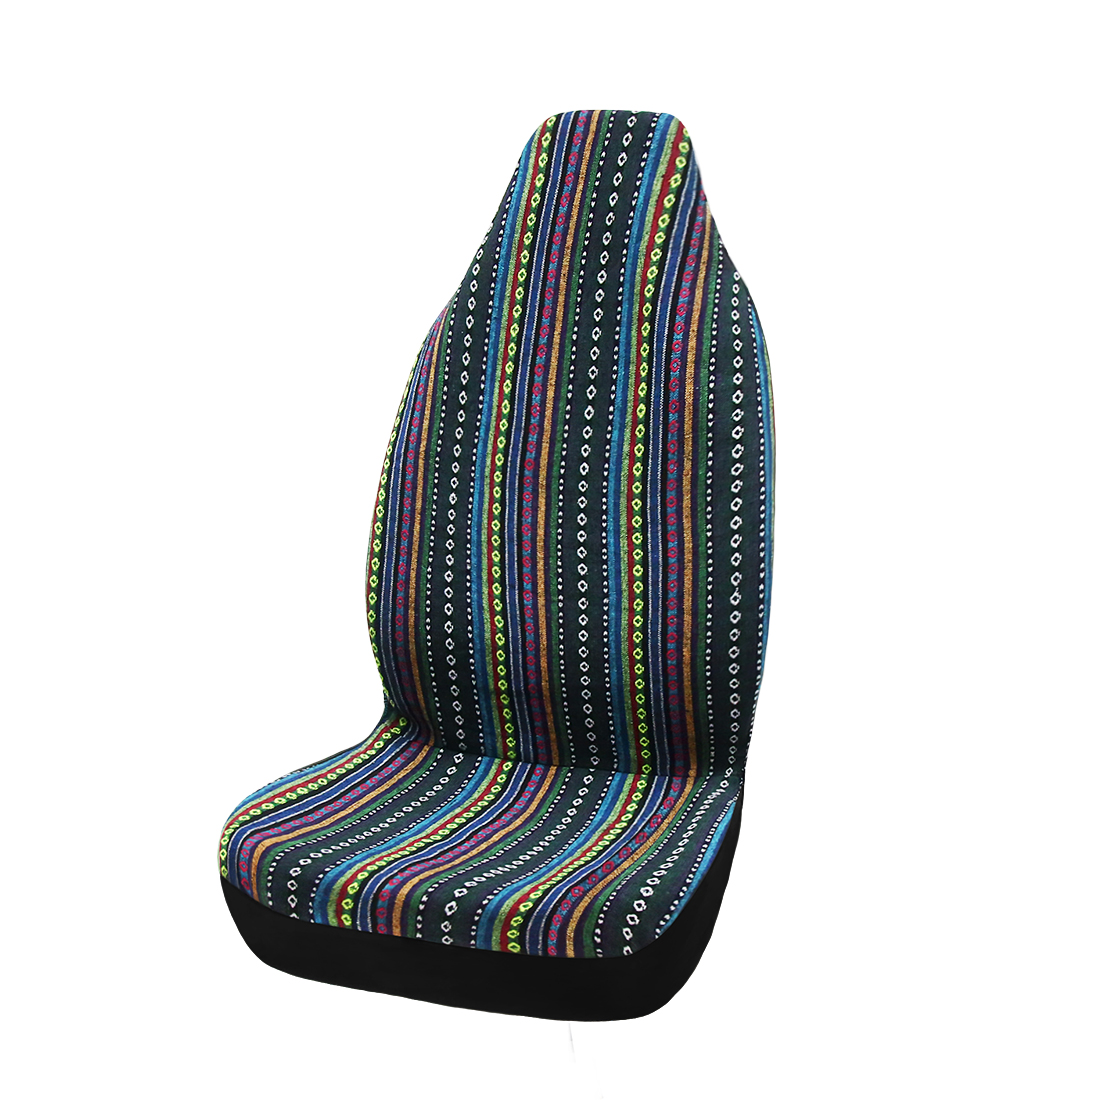 Automotive Baja Blanket Universal Bucket Seat Cover For Car Truck SUV